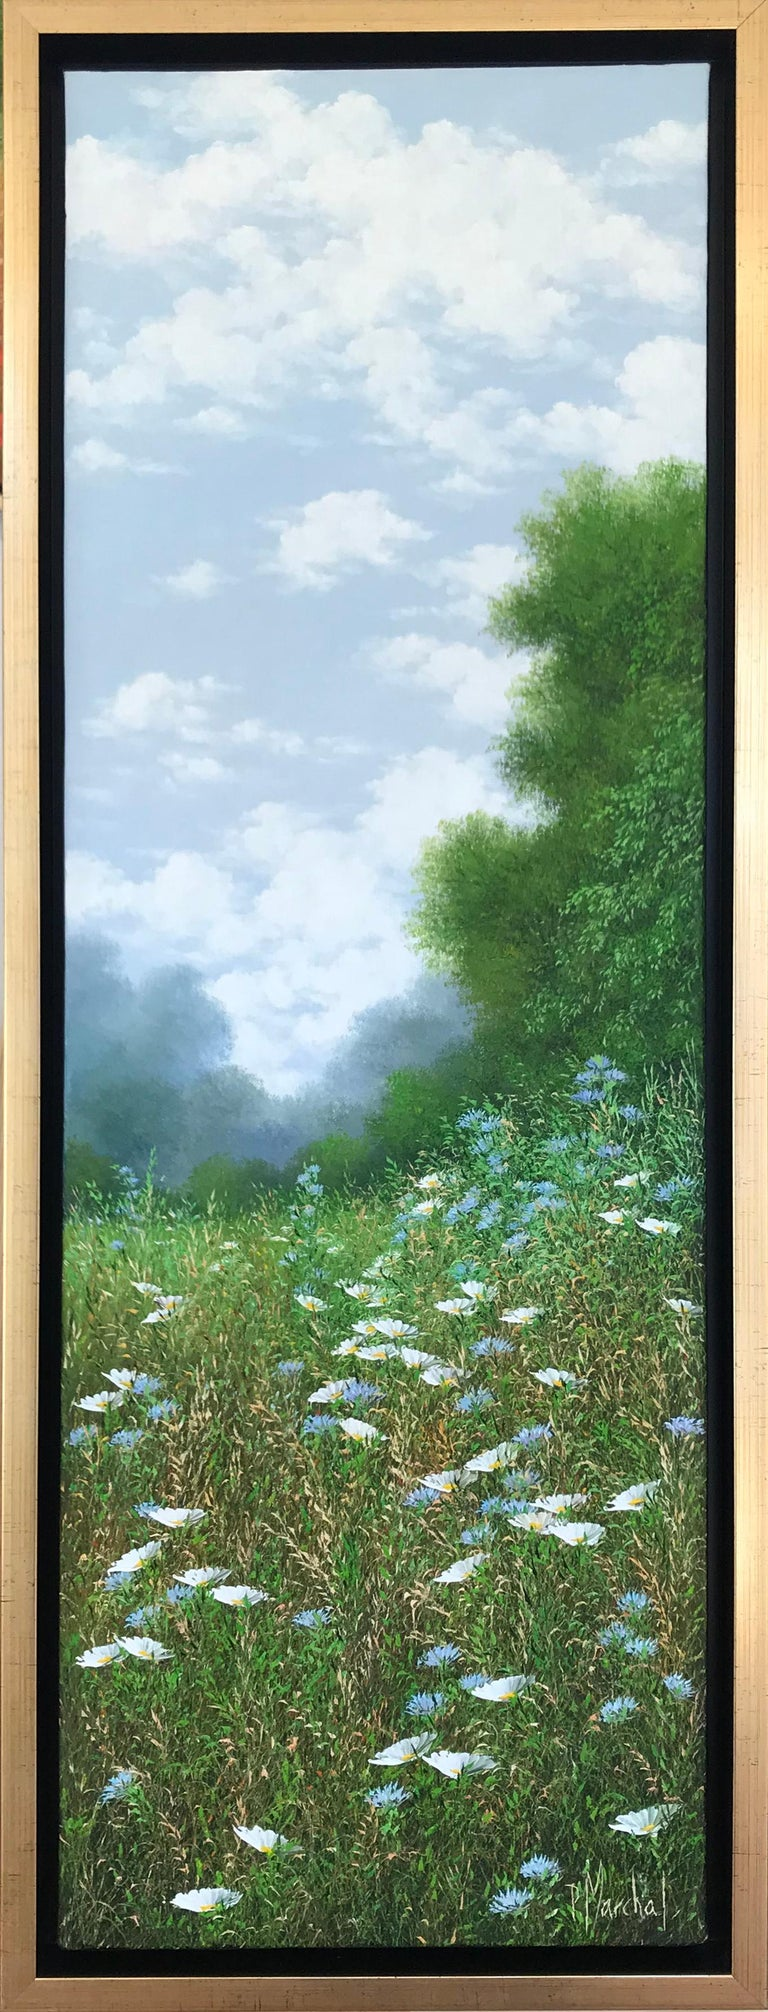 Bleuets et Marguerites, oil paiting on canvas,size with frame 95.4 x 35.4 cm - Painting by Patrice Marchal